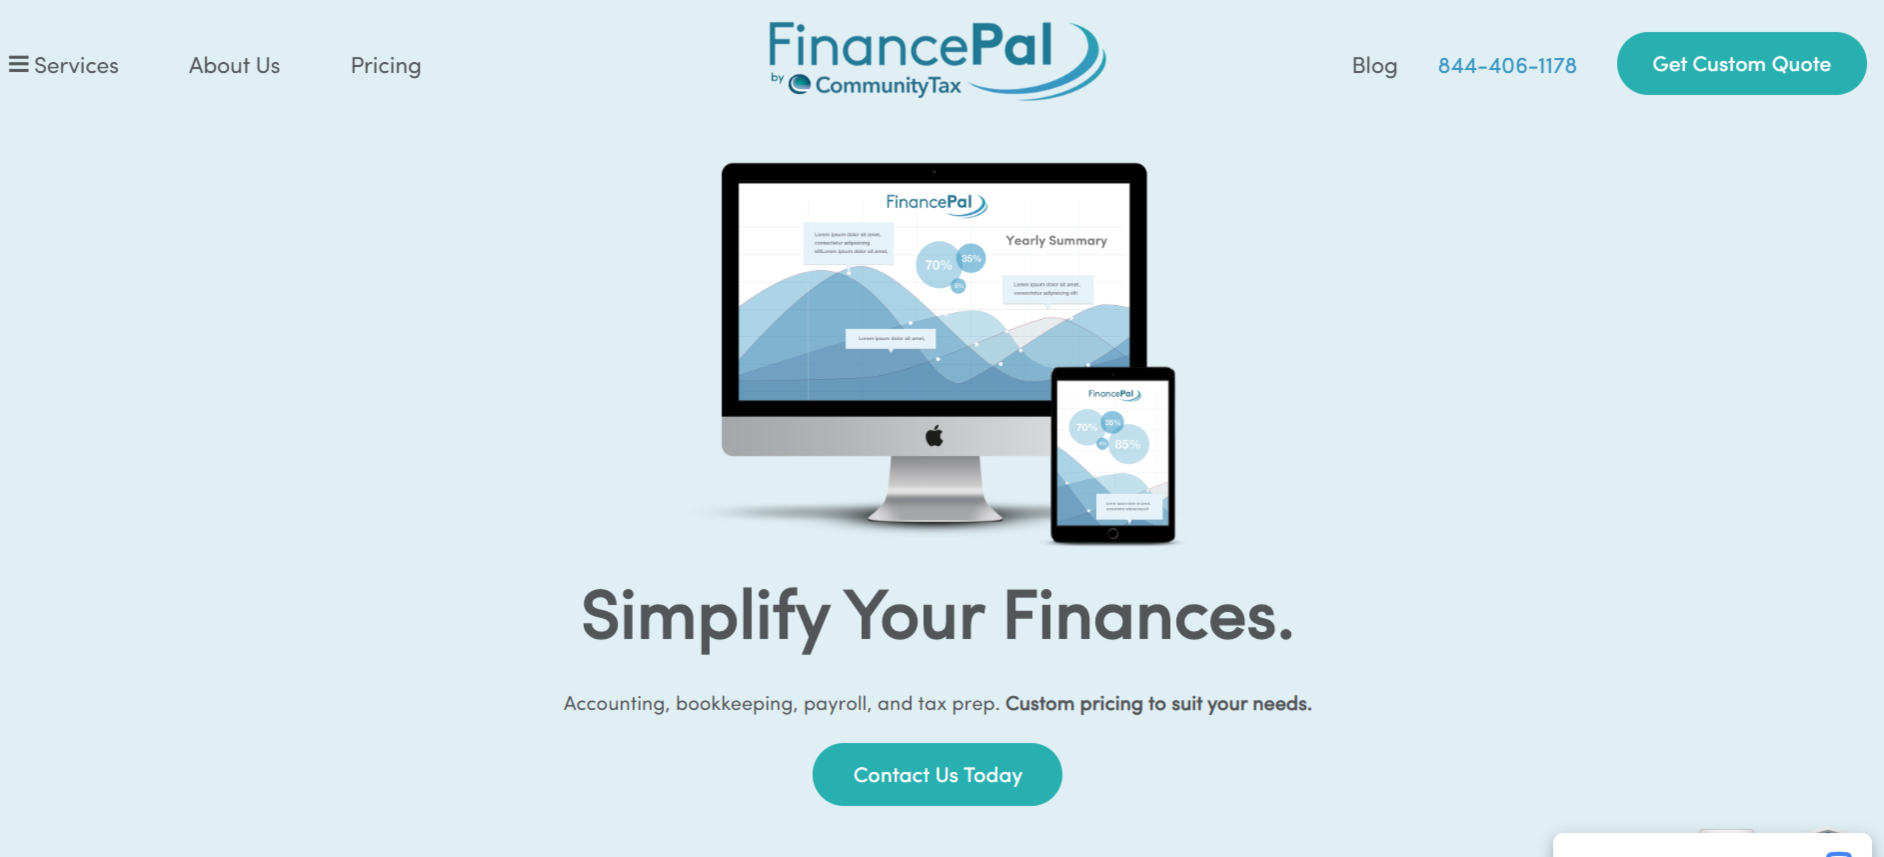 This is a screenshot taken from the FinancePal.com that provides accounting outsourcing services for bookkeeping, payroll, and tax prep.